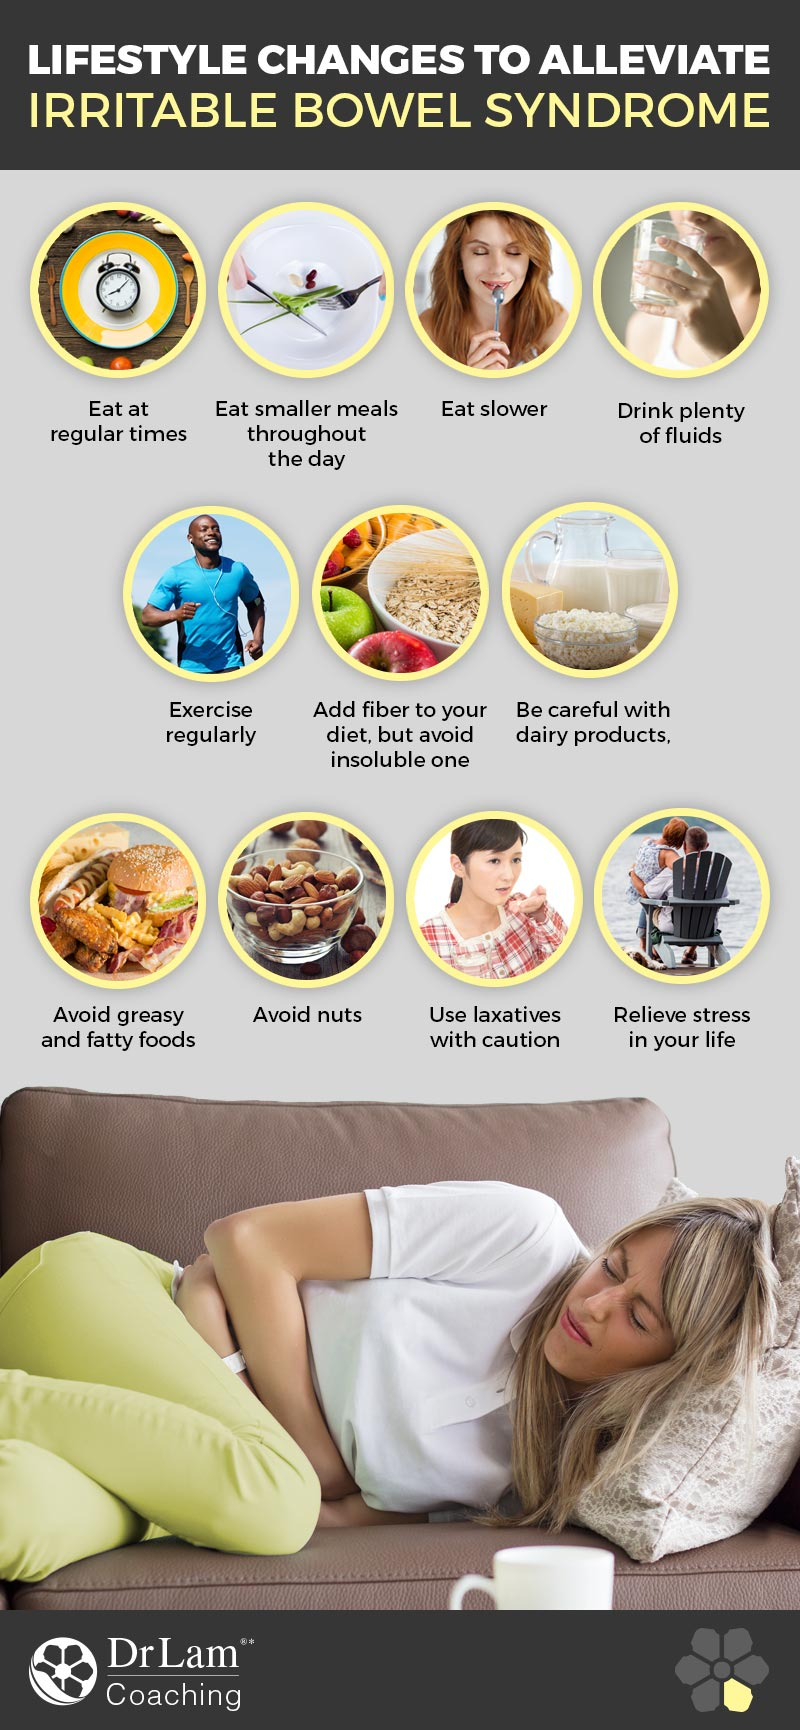 Check out this easy to understand infographic about alleviating IBS with lifestyle changes